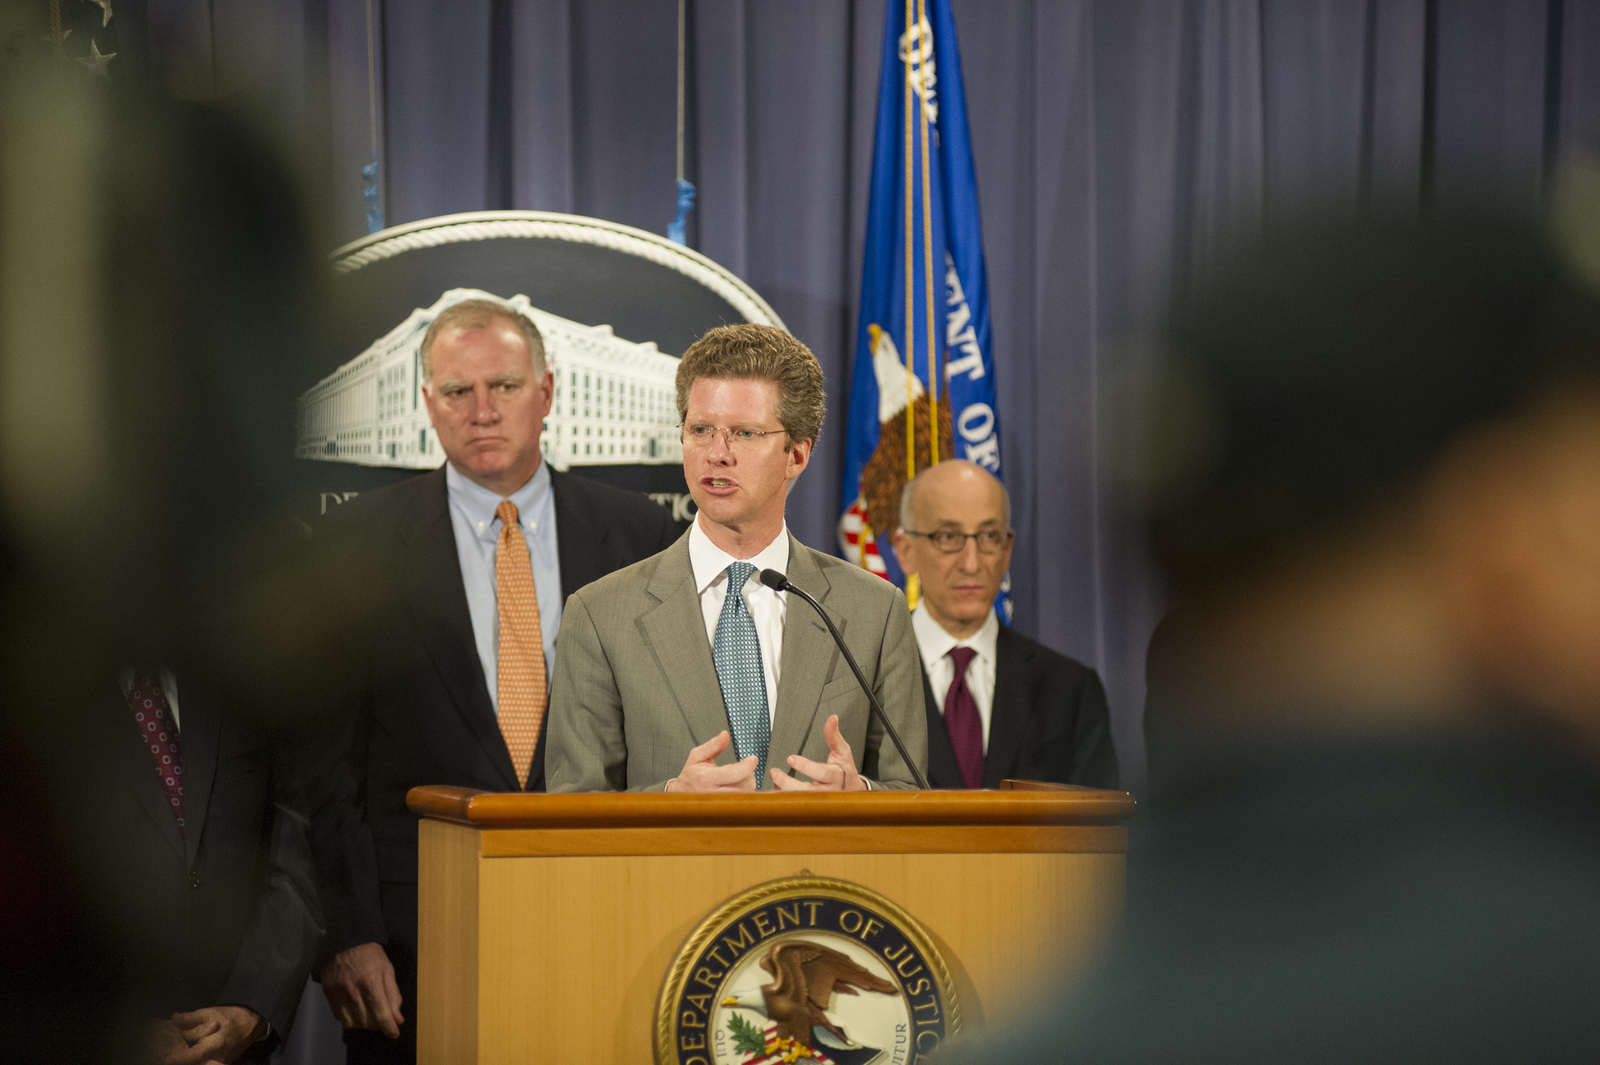 Secretary Shaun Donovan at the Department of Justice,  [where he joined Attorney General Eric Holder, Jr. at a press conference announcing the] mortgage servicers settlement: [a $25 billion agreement, reached by HUD, Justice, and 49 state attorneys general with the nation's five largest mortgage servicers. Among the other officials on hand were the Attorney General of Iowa, Tom Miller;  HUD Inspector General David Montoya;  Attorney General of Colorado, John Suthers;  and Associate U.S. Attorney General, Tom Perrelli.]